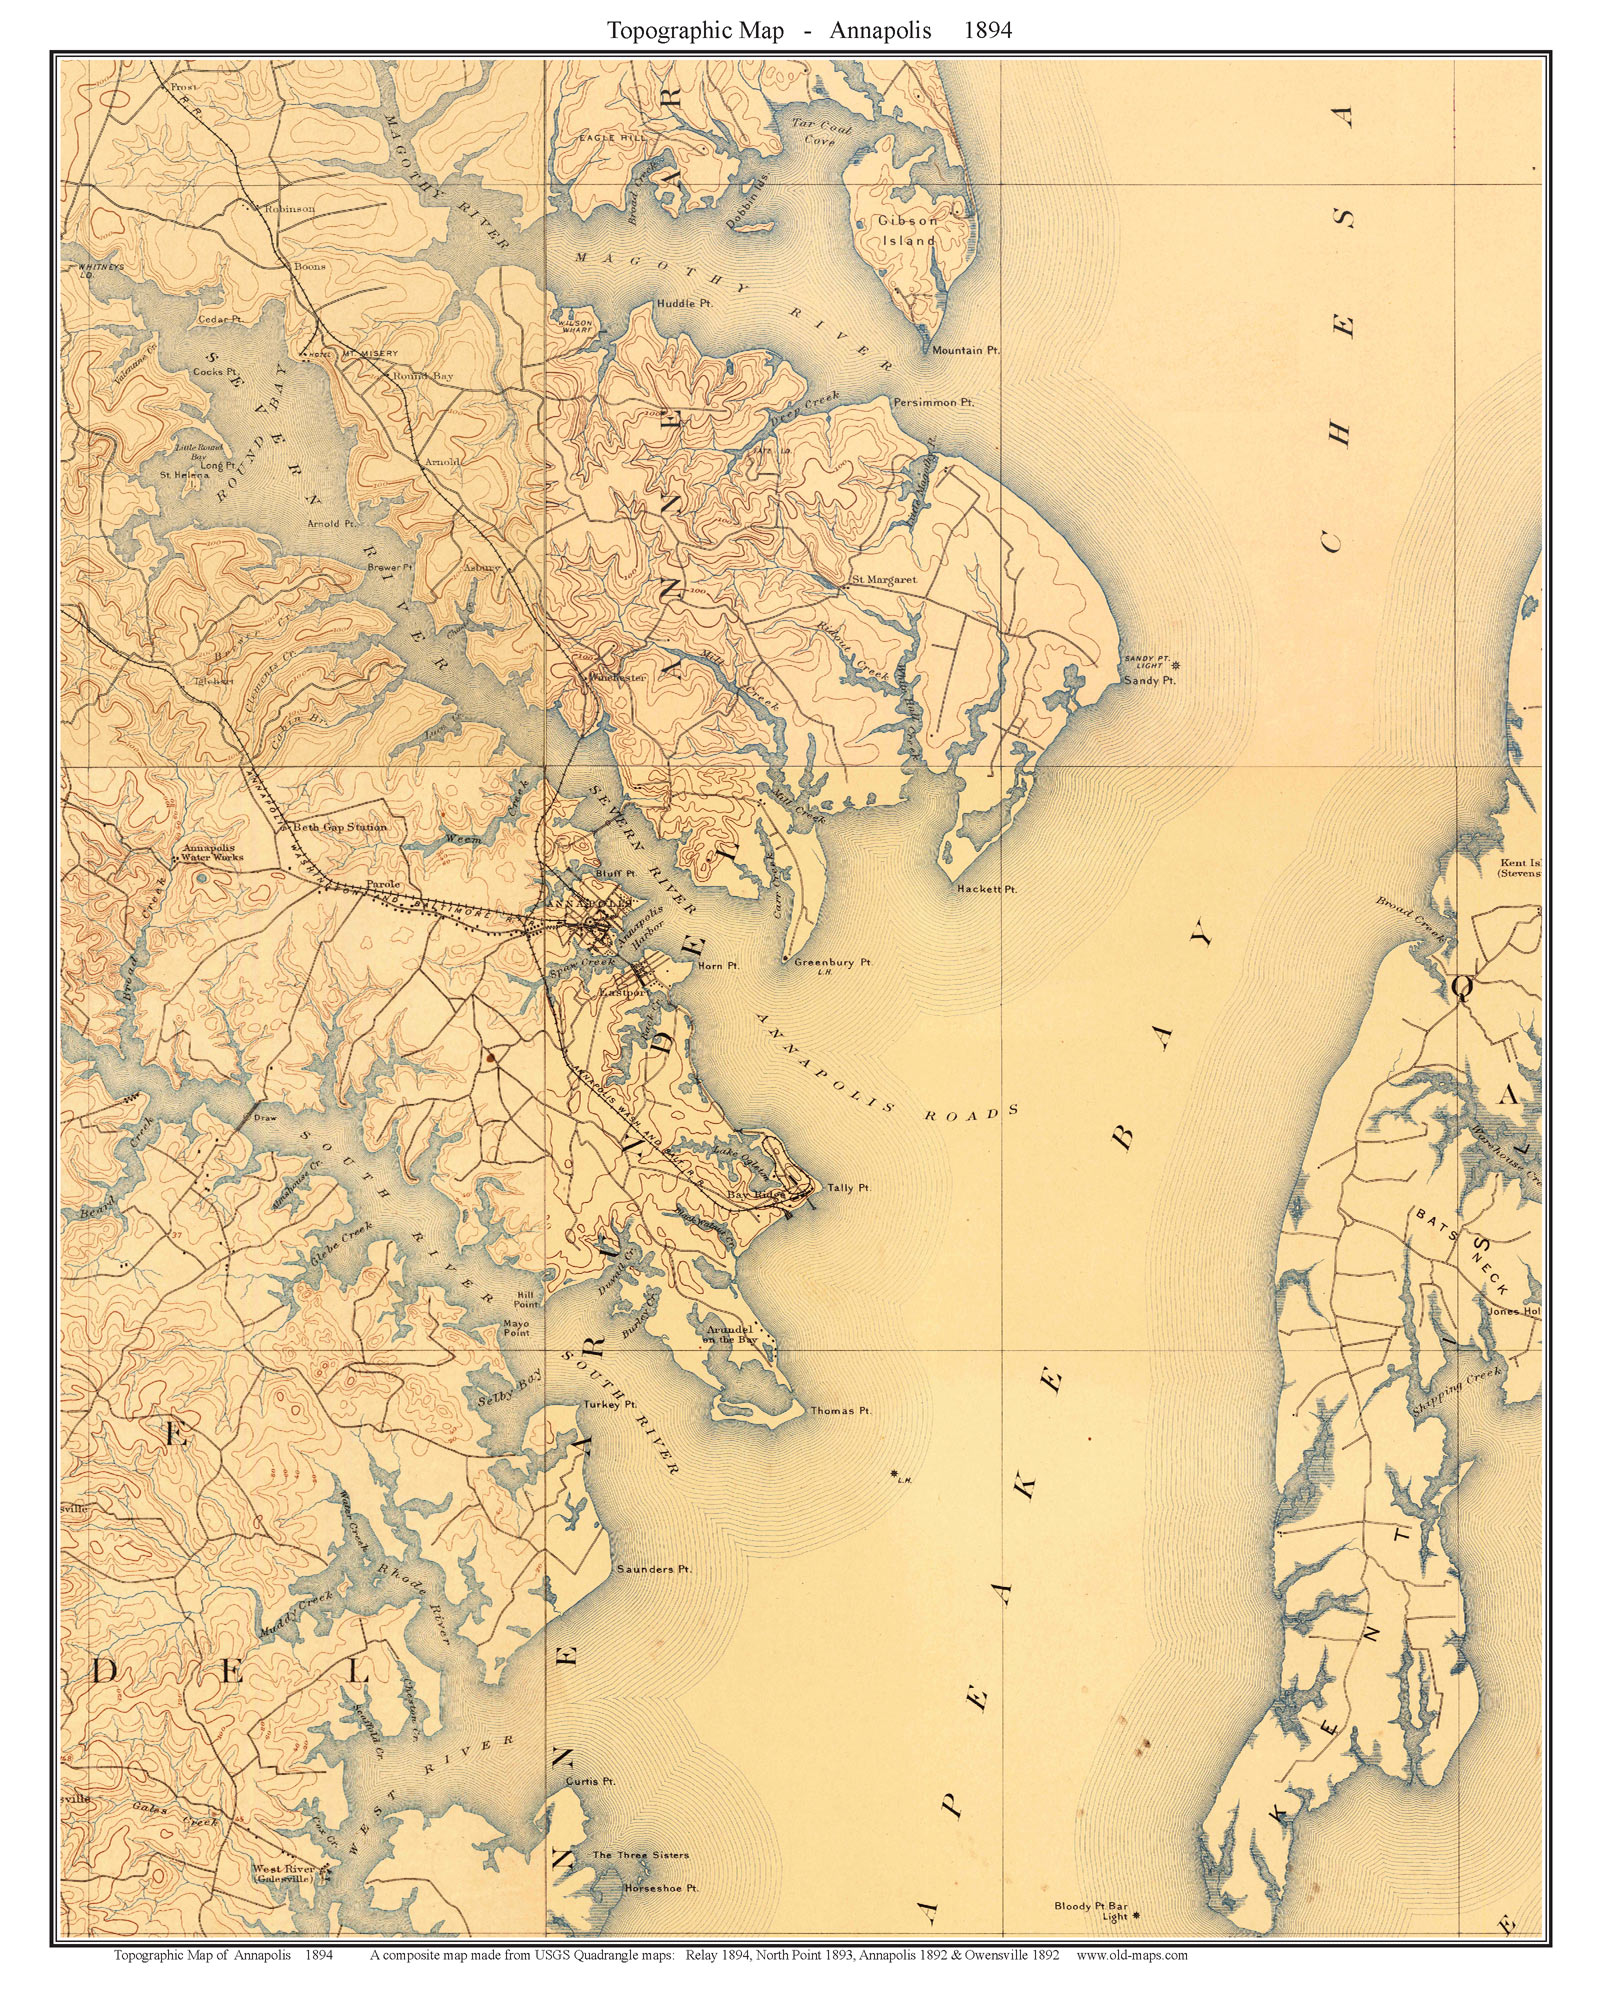 Old Topographical Maps Of The Chesapeake Bay Area Map of chesapeake bay ✅. old maps